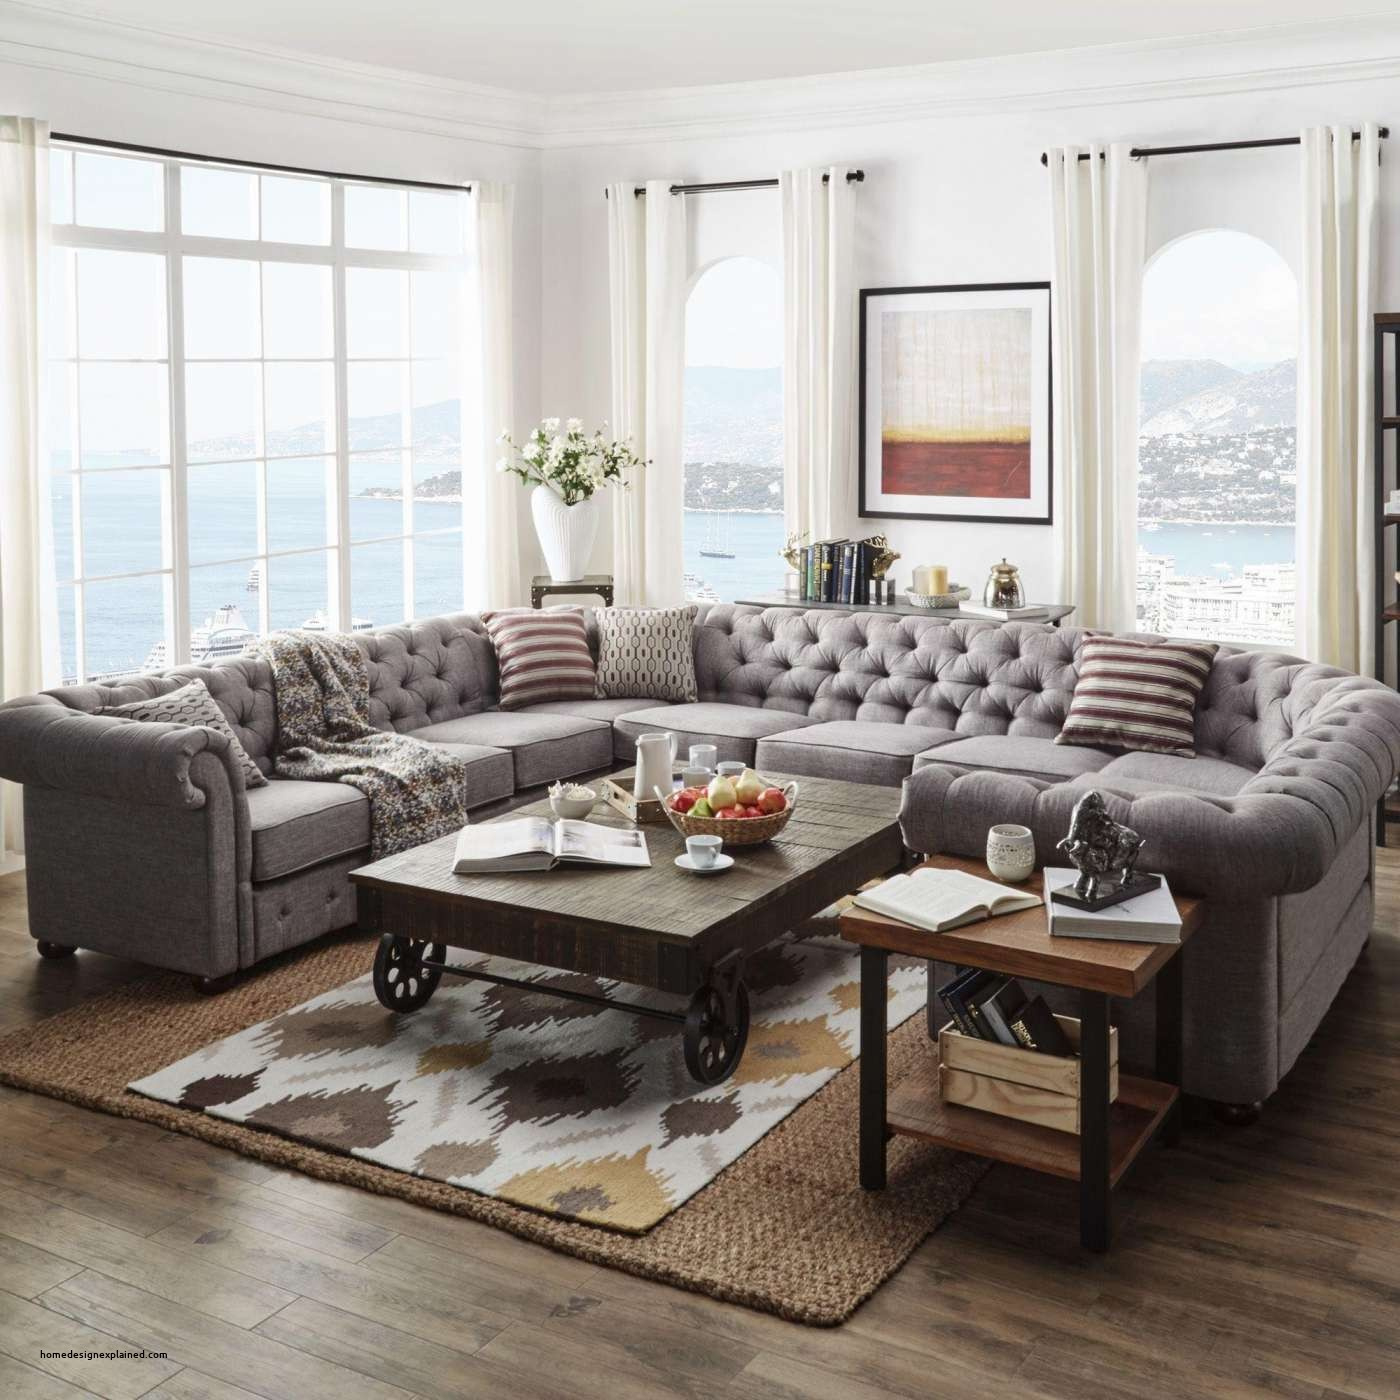 Home Ideas Costco Living Room Furniture Dazzling Best Patio inside Costco Living Room Sets